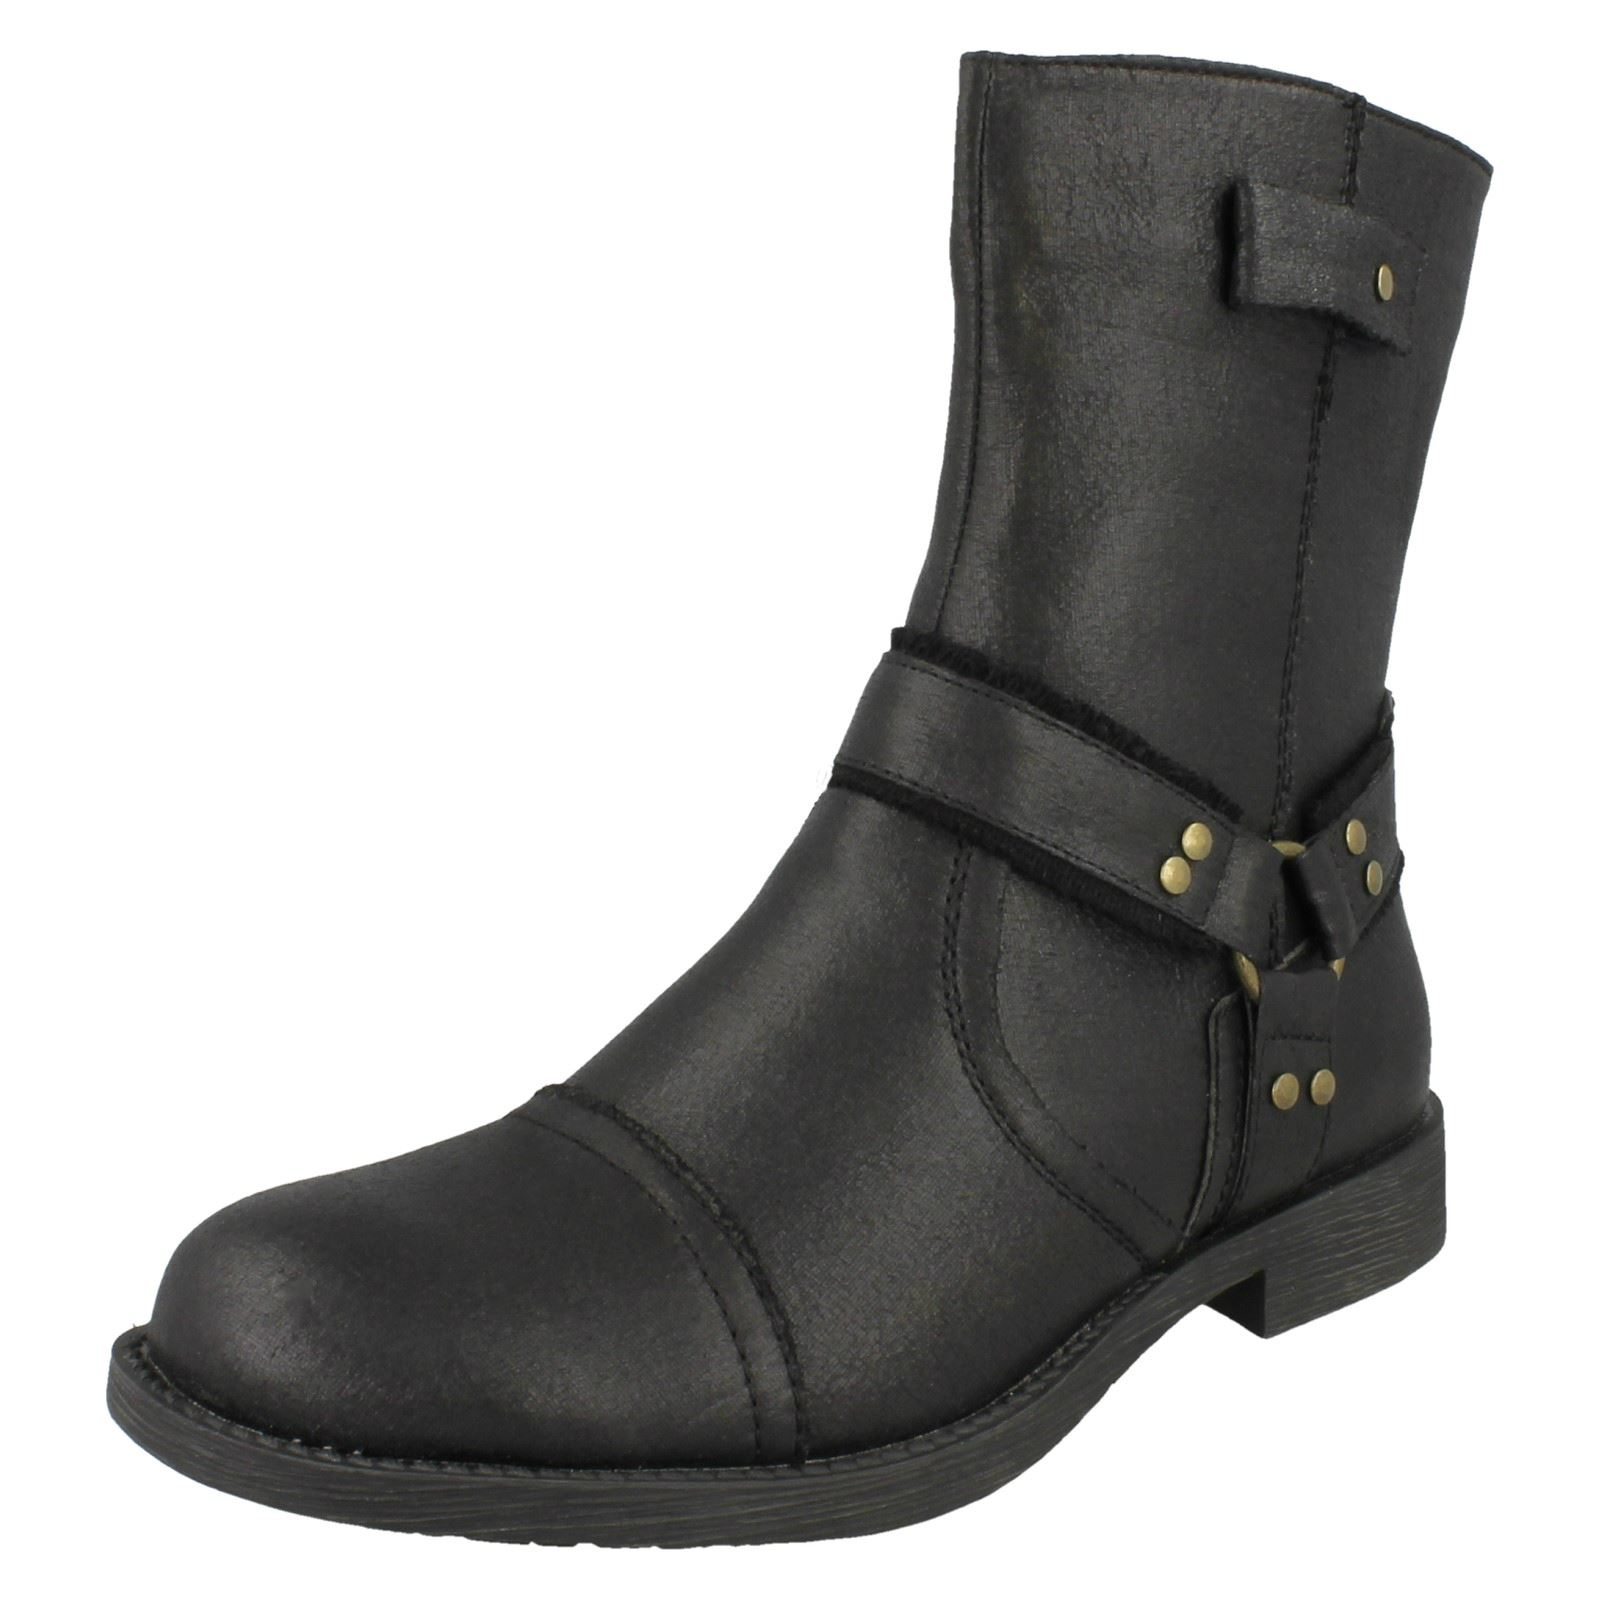 The Heritage Boots